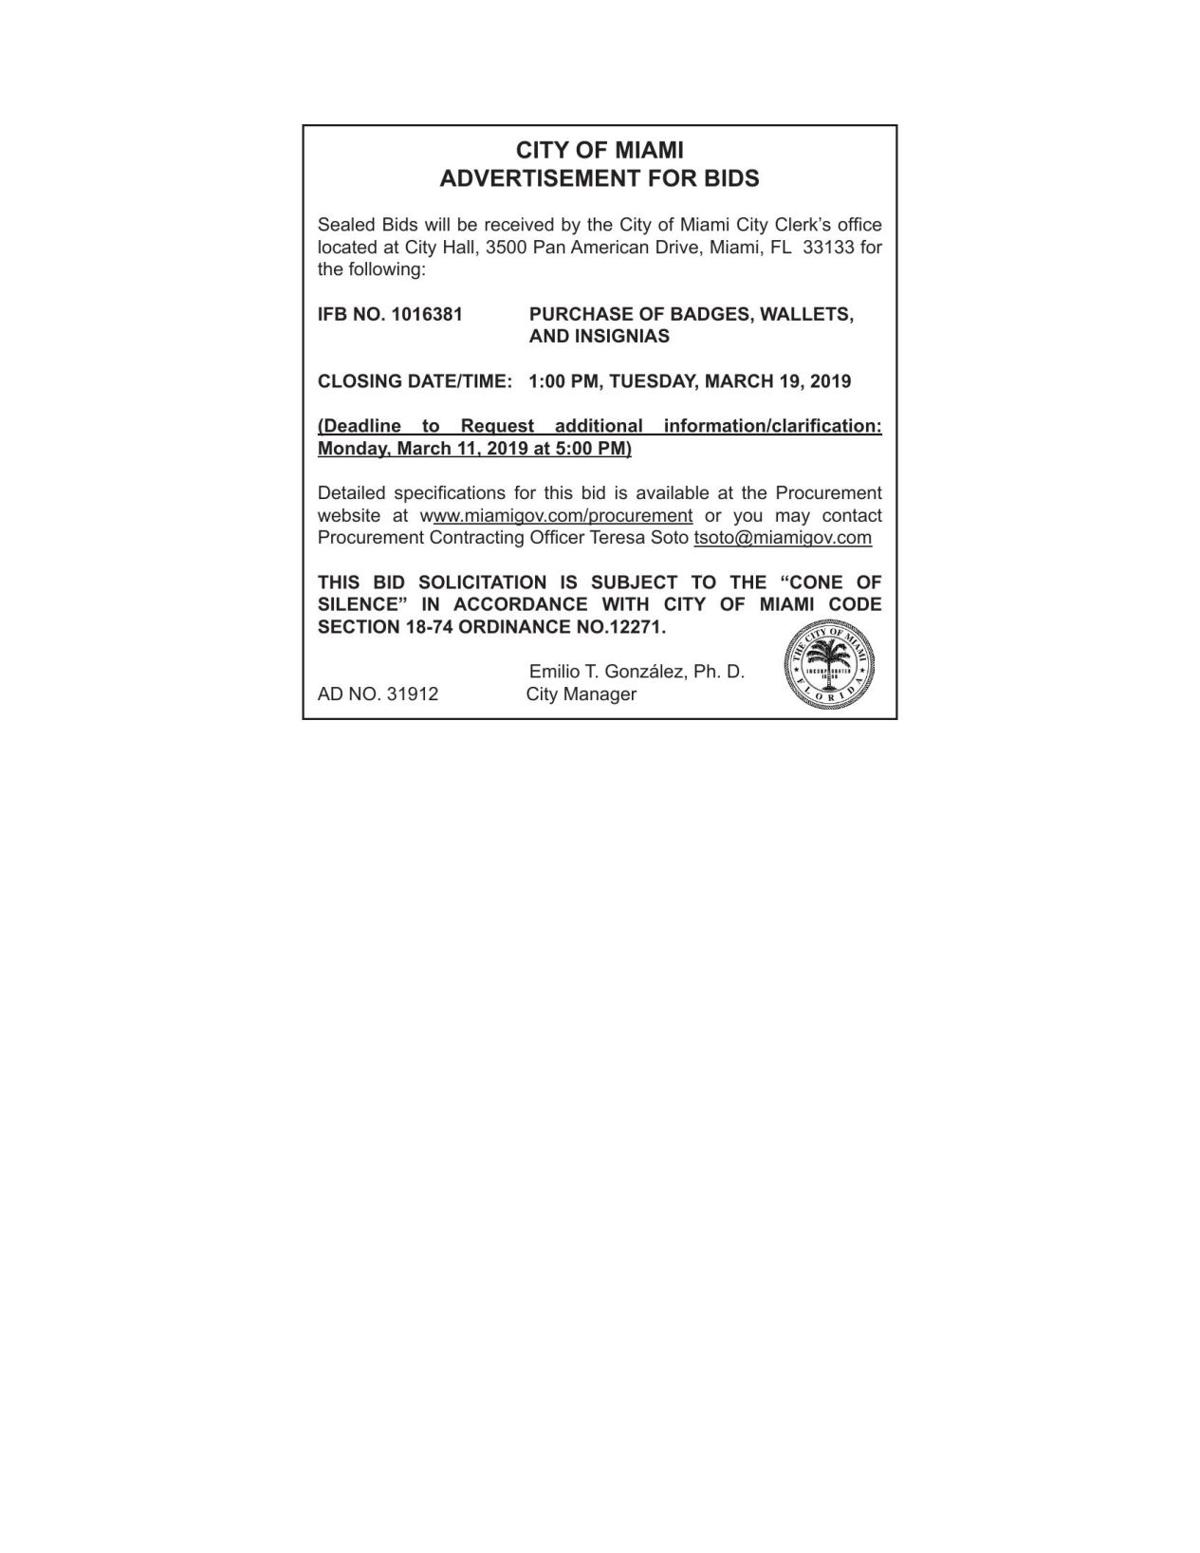 CITY OF MIAMI ADVERTISEMENT FOR BIDS